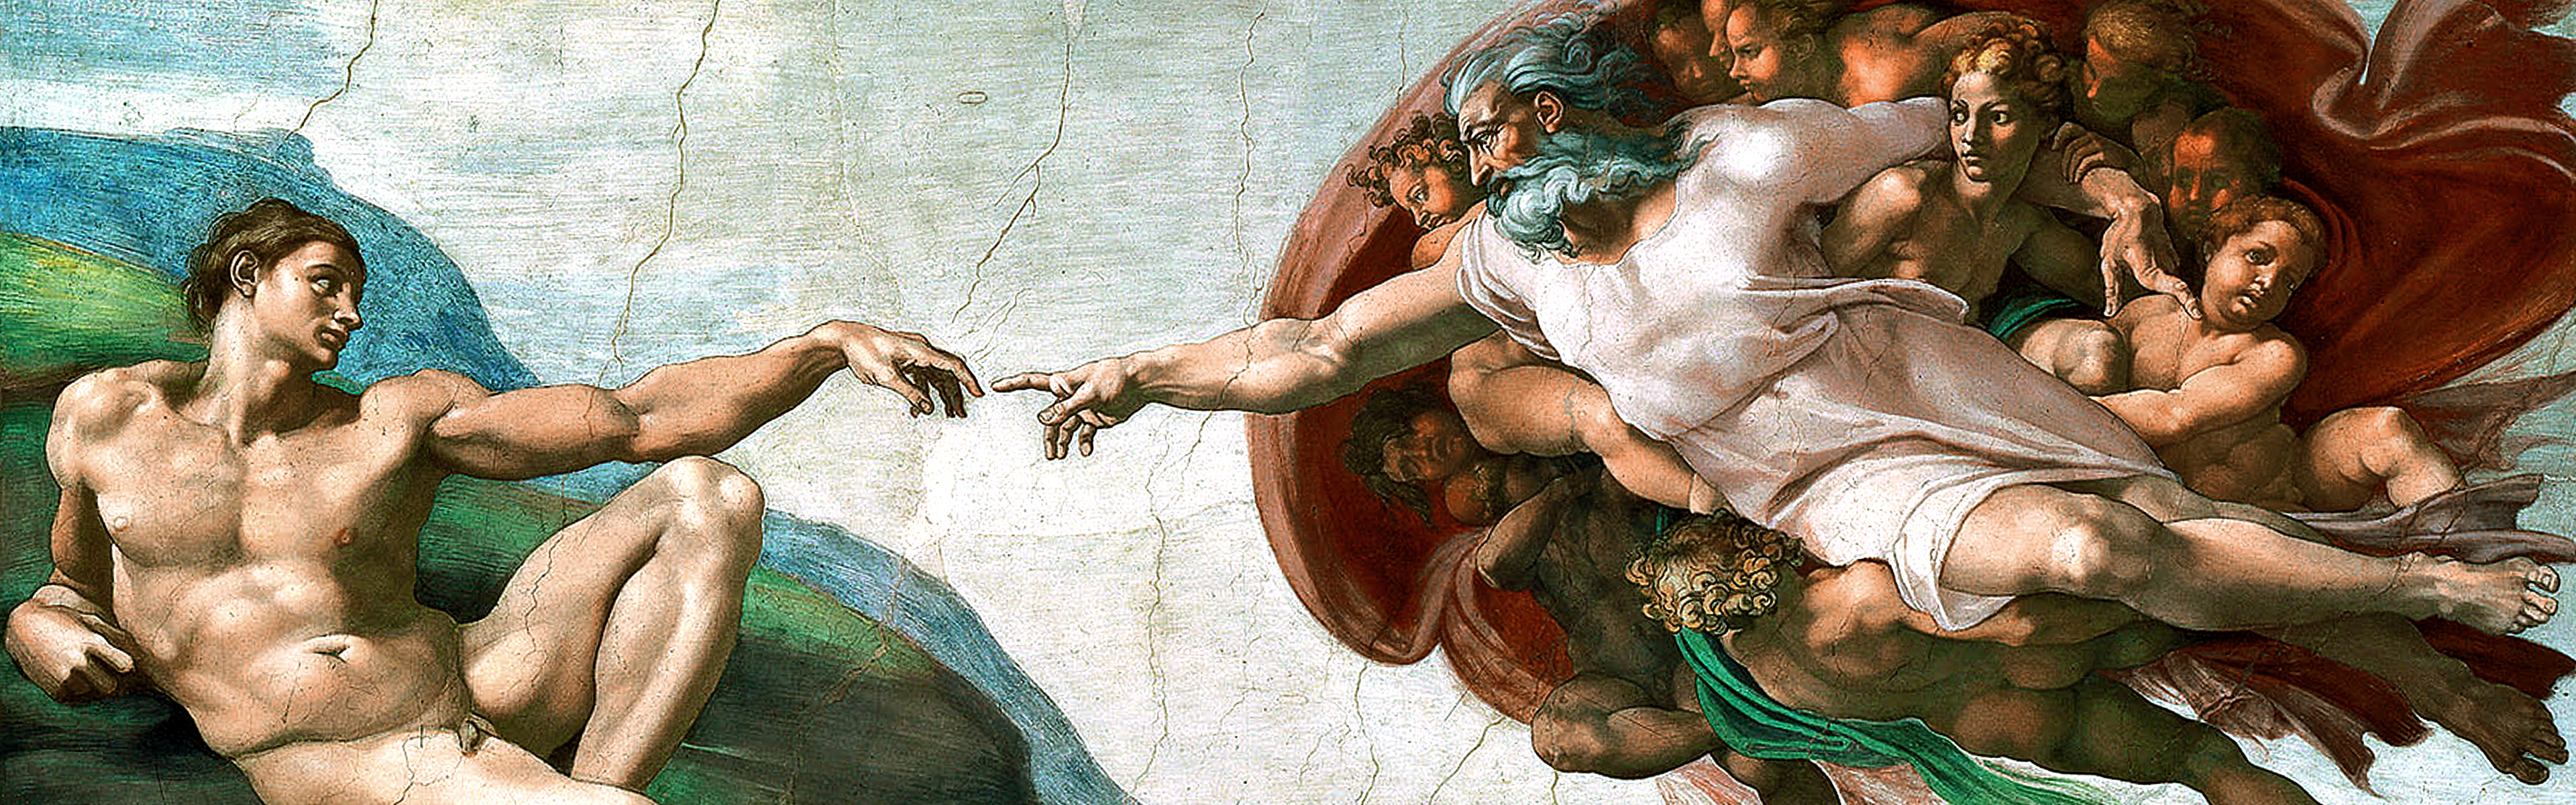 an introduction to the michelangelos art Michelangelo's artwork consisted of paintings and sculptures that showed humanity in online essays since his art portrayed both optimism and pessimism.